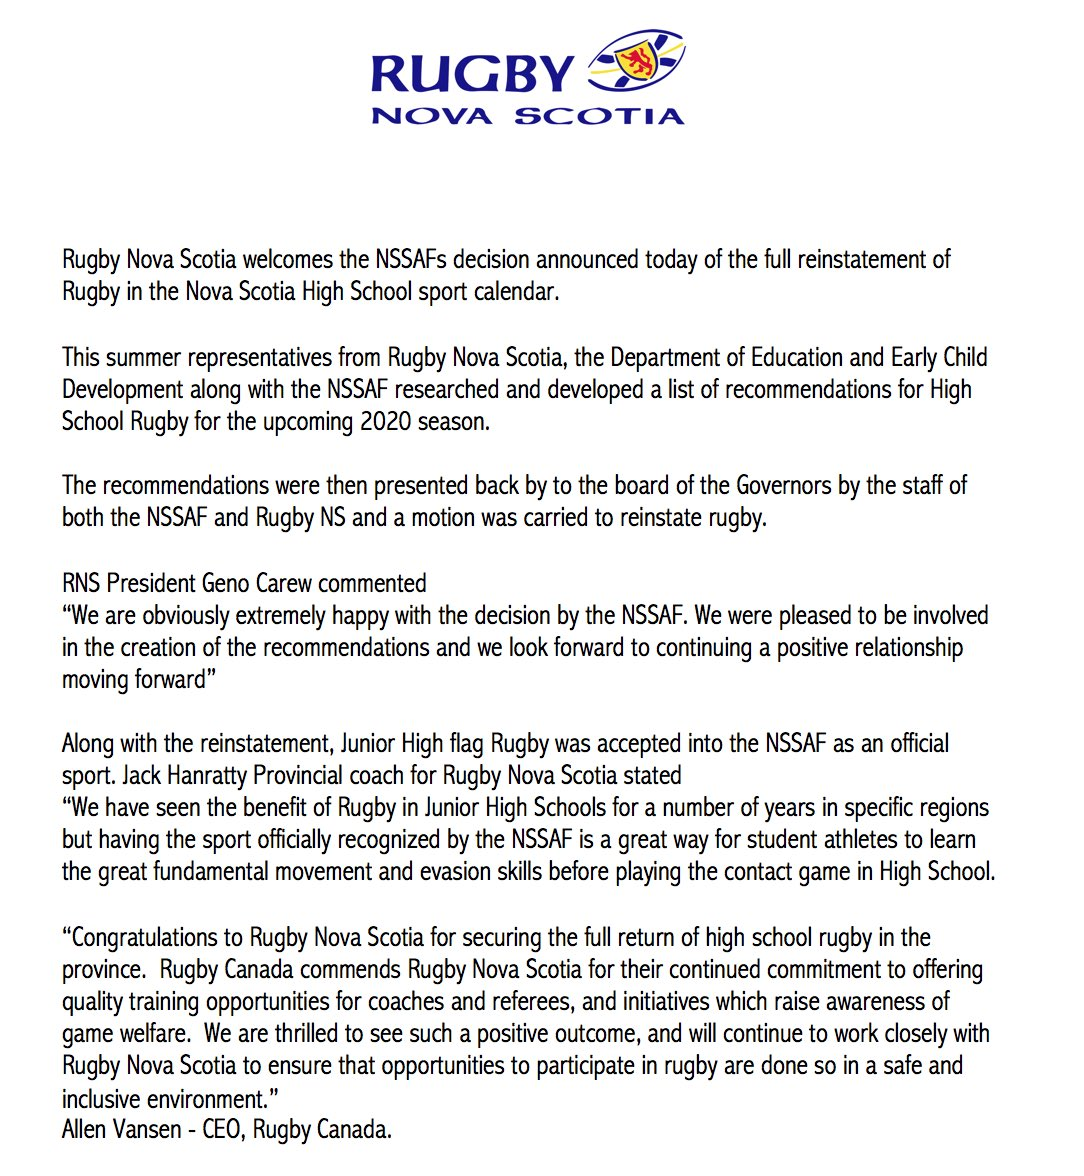 Rugby Nova Scotia reaction to the NSSAF news today of the reinstatement of Rugby.